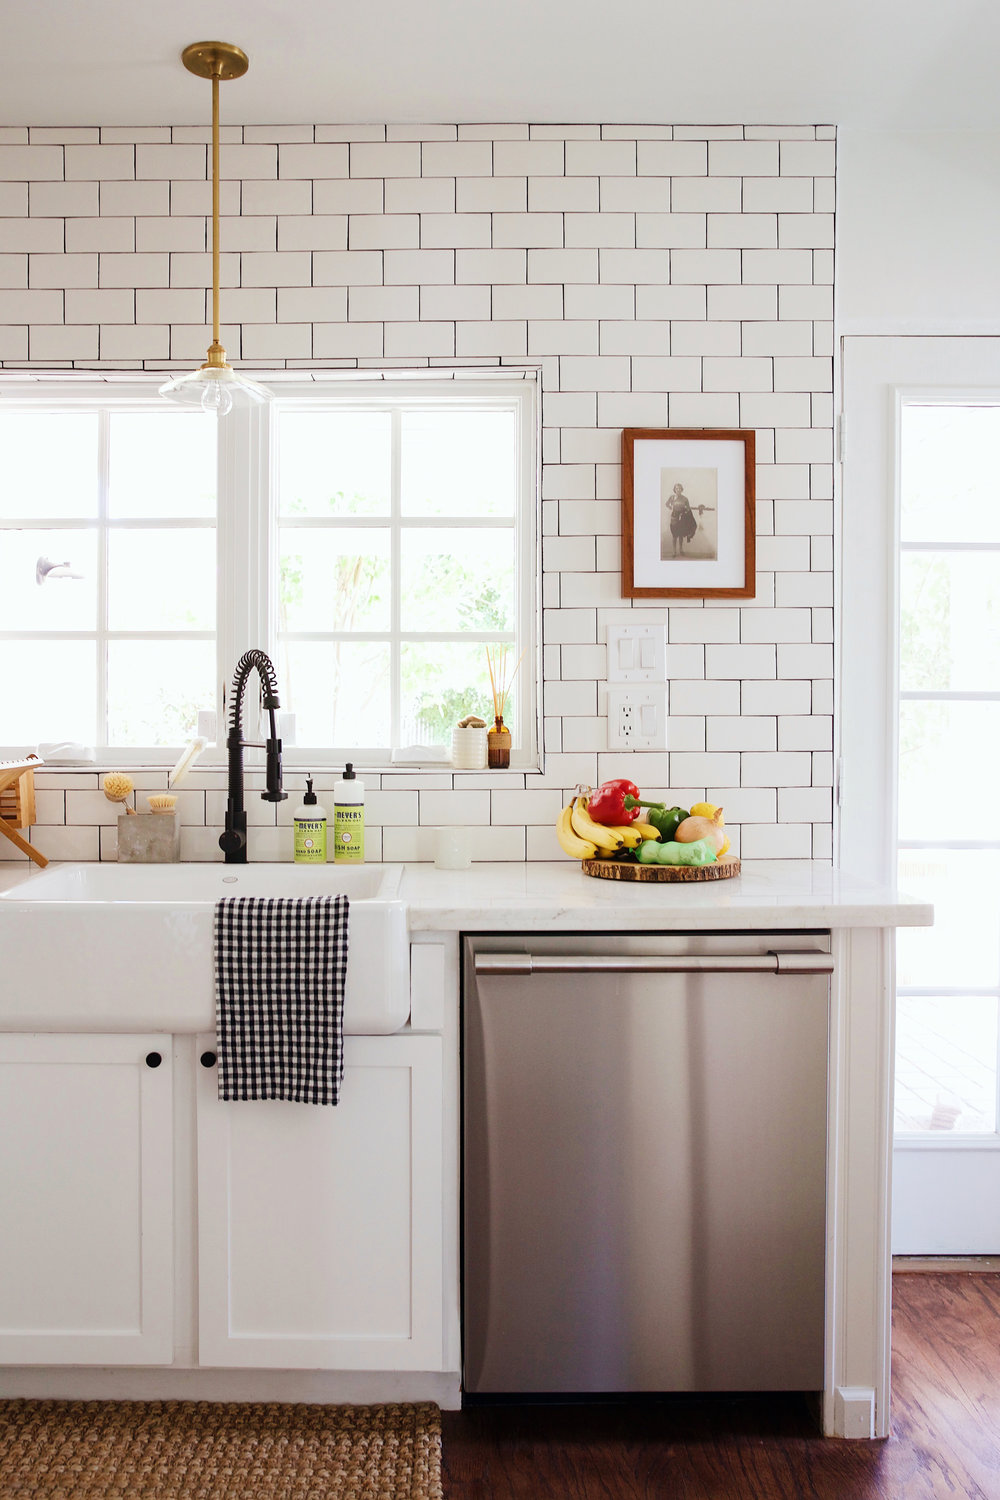 McGee & Co. in the New Darlings' Kitchen Makeover